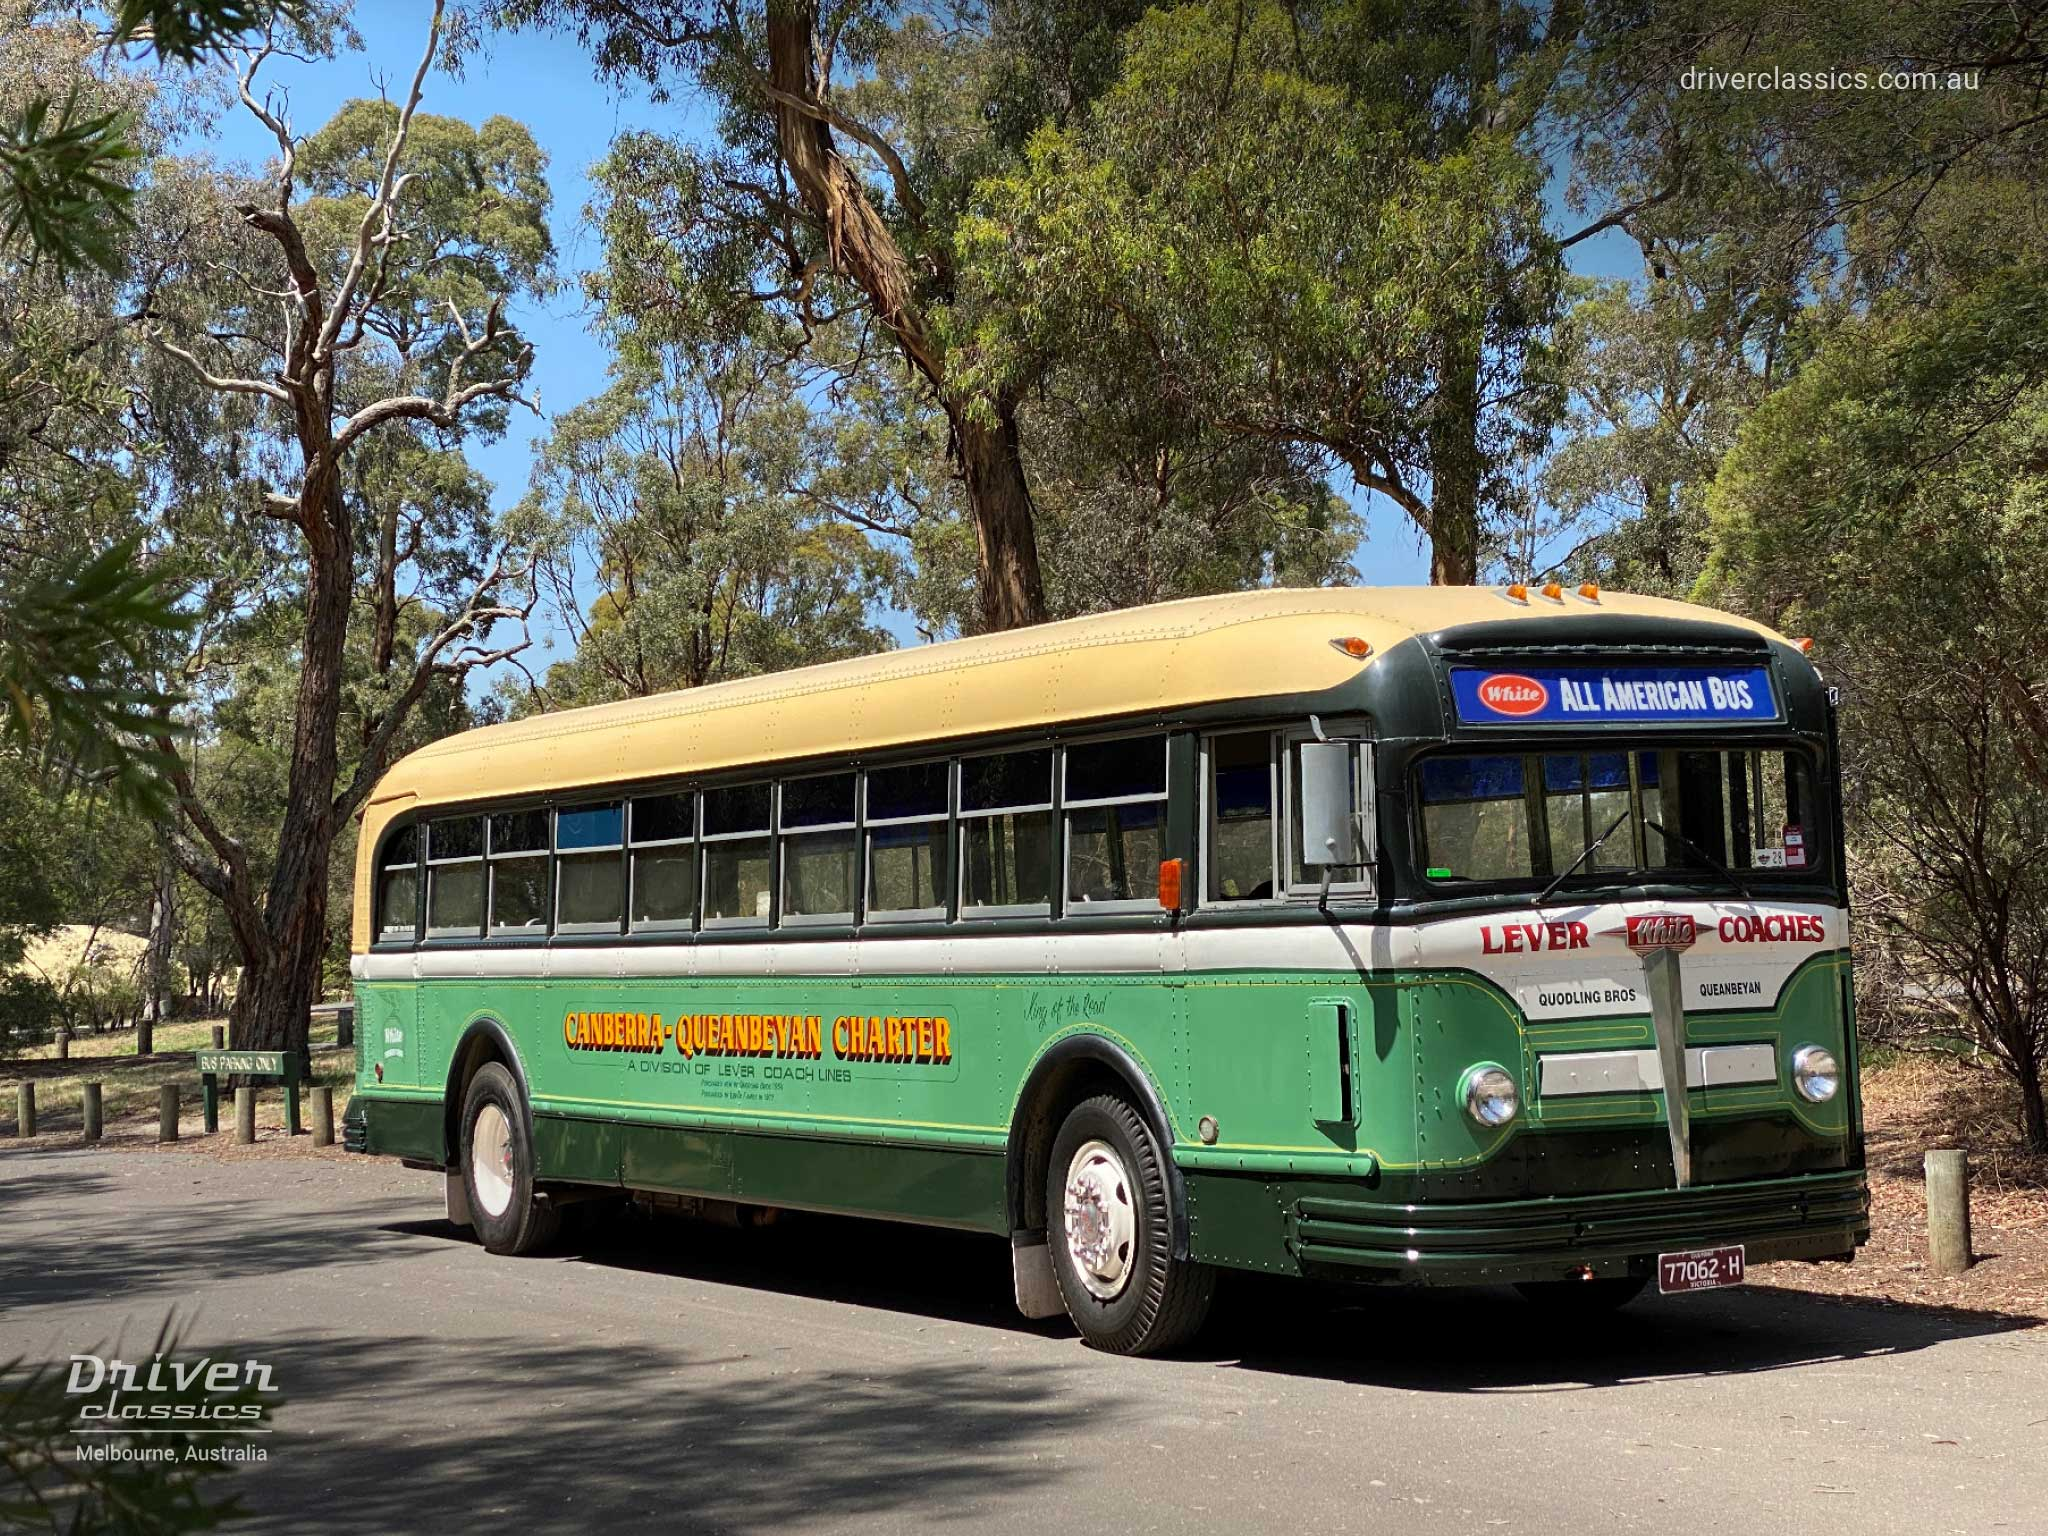 1948 White 798-12 bus, Front and Side, Jells Park VIC, Photo Taken January 2020